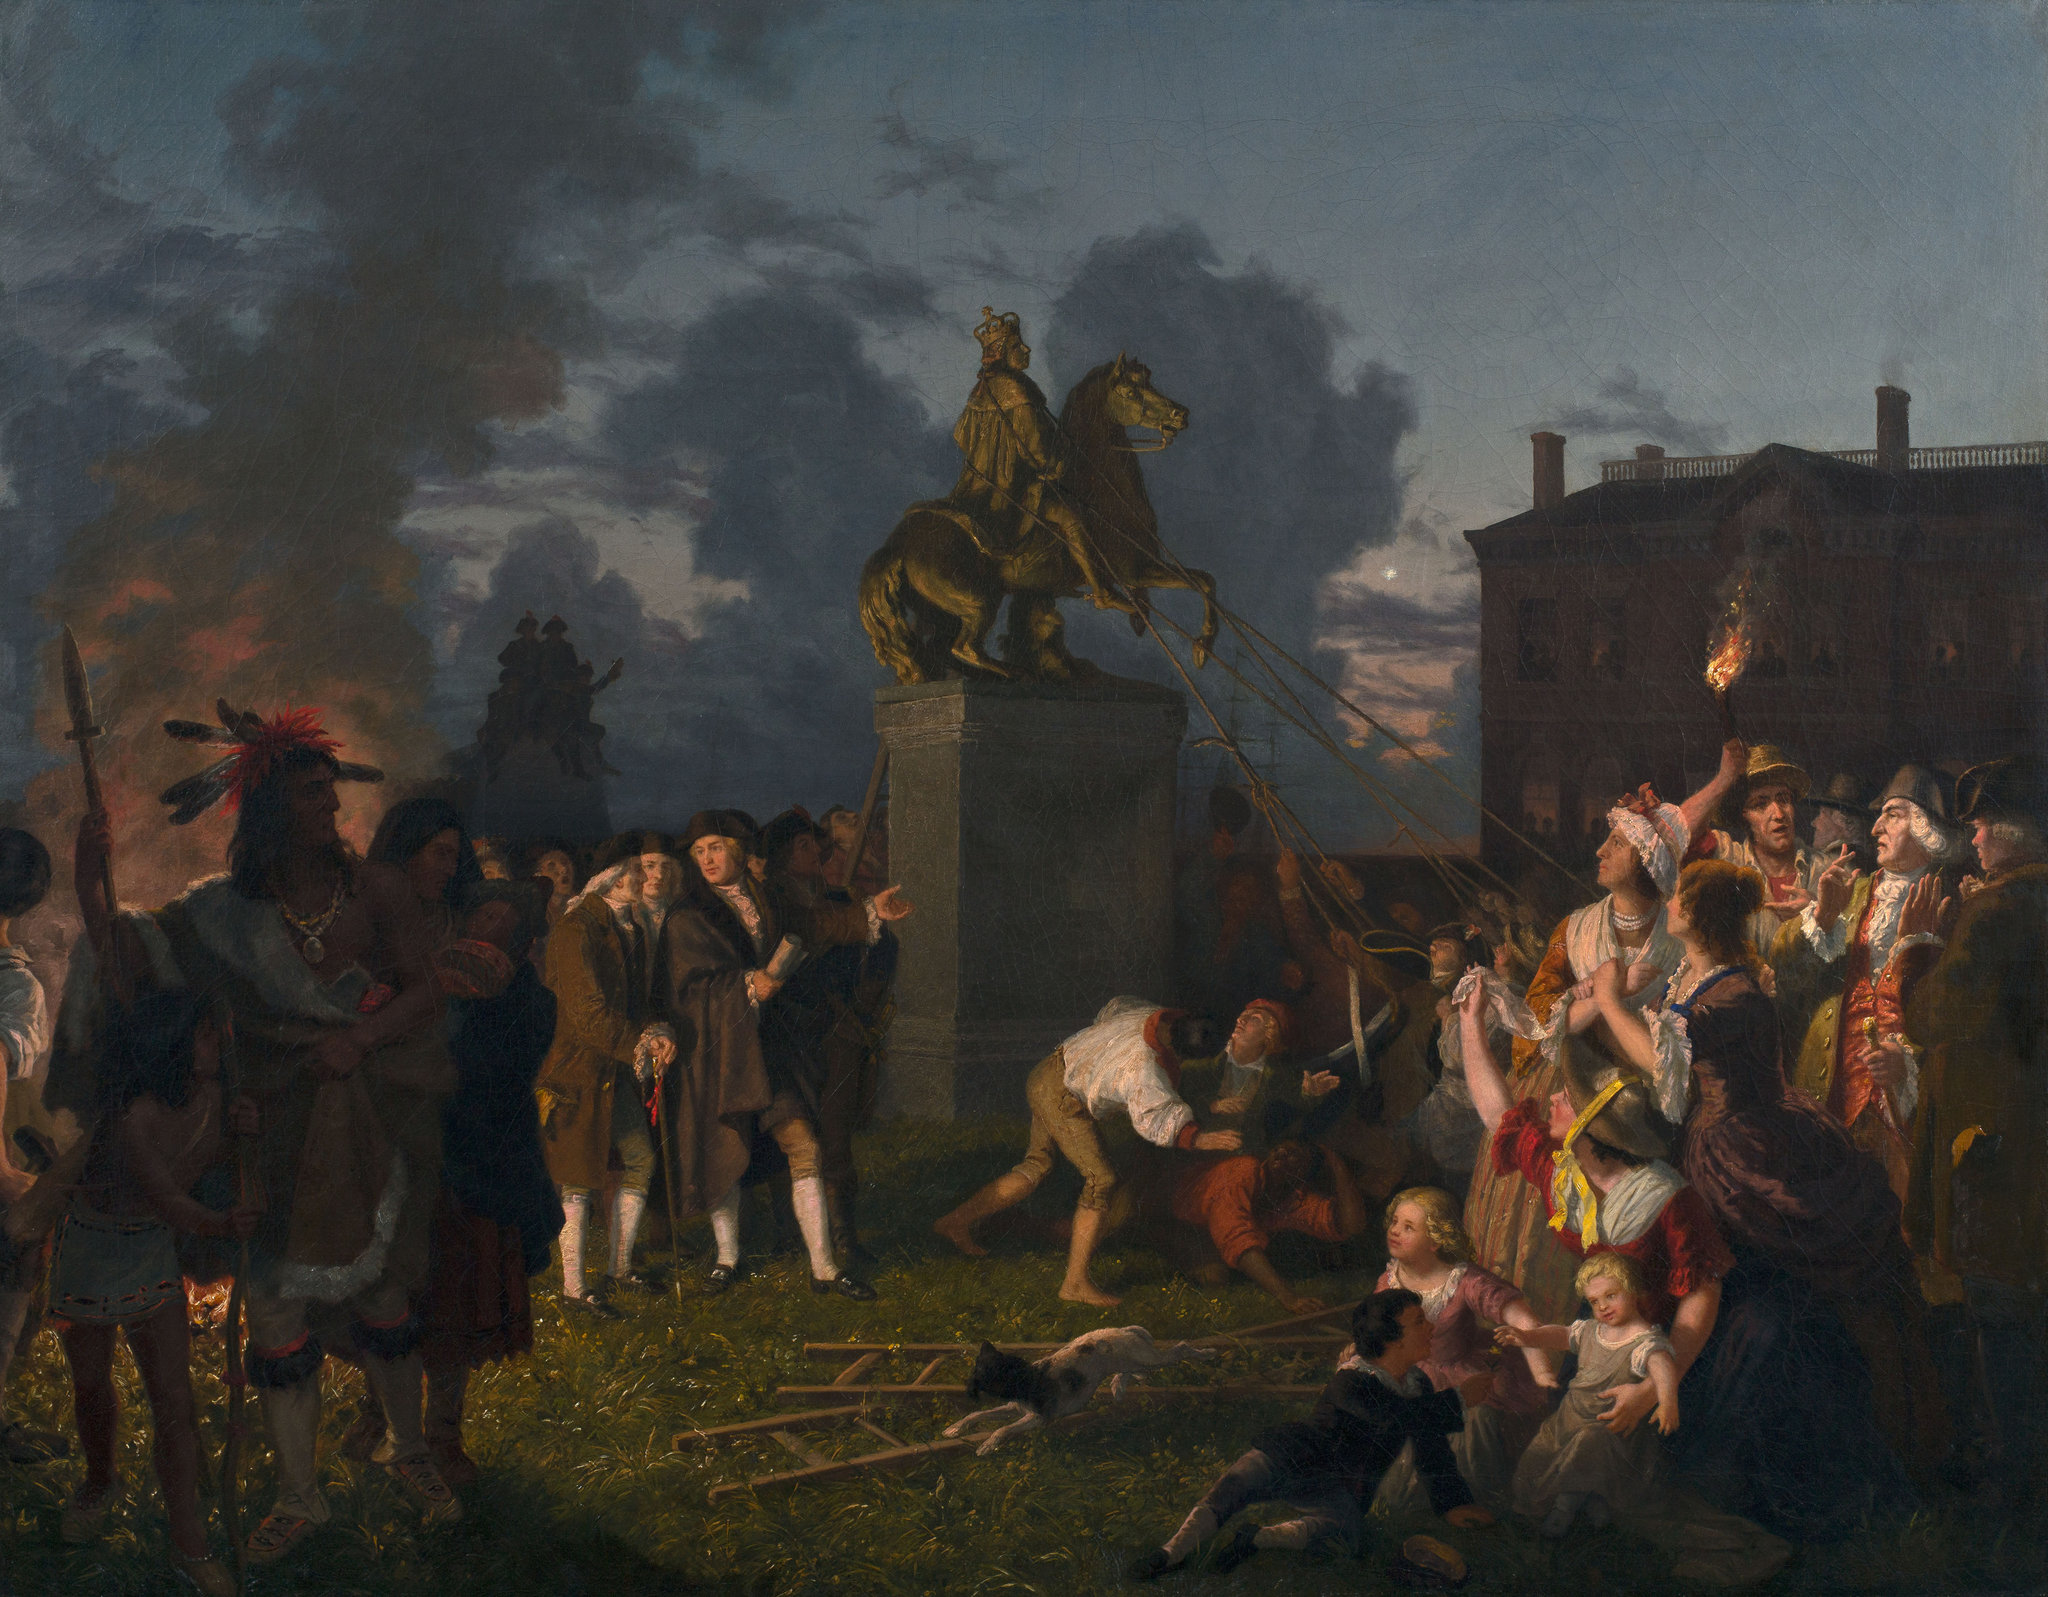 Pulling Down the Statue of King George III, N.Y.C. A romanticized depiction of the Sons of Liberty destroying the statue after the Declaration was read by George Washington to citizens and his troops in New York City on July 9, 1776.